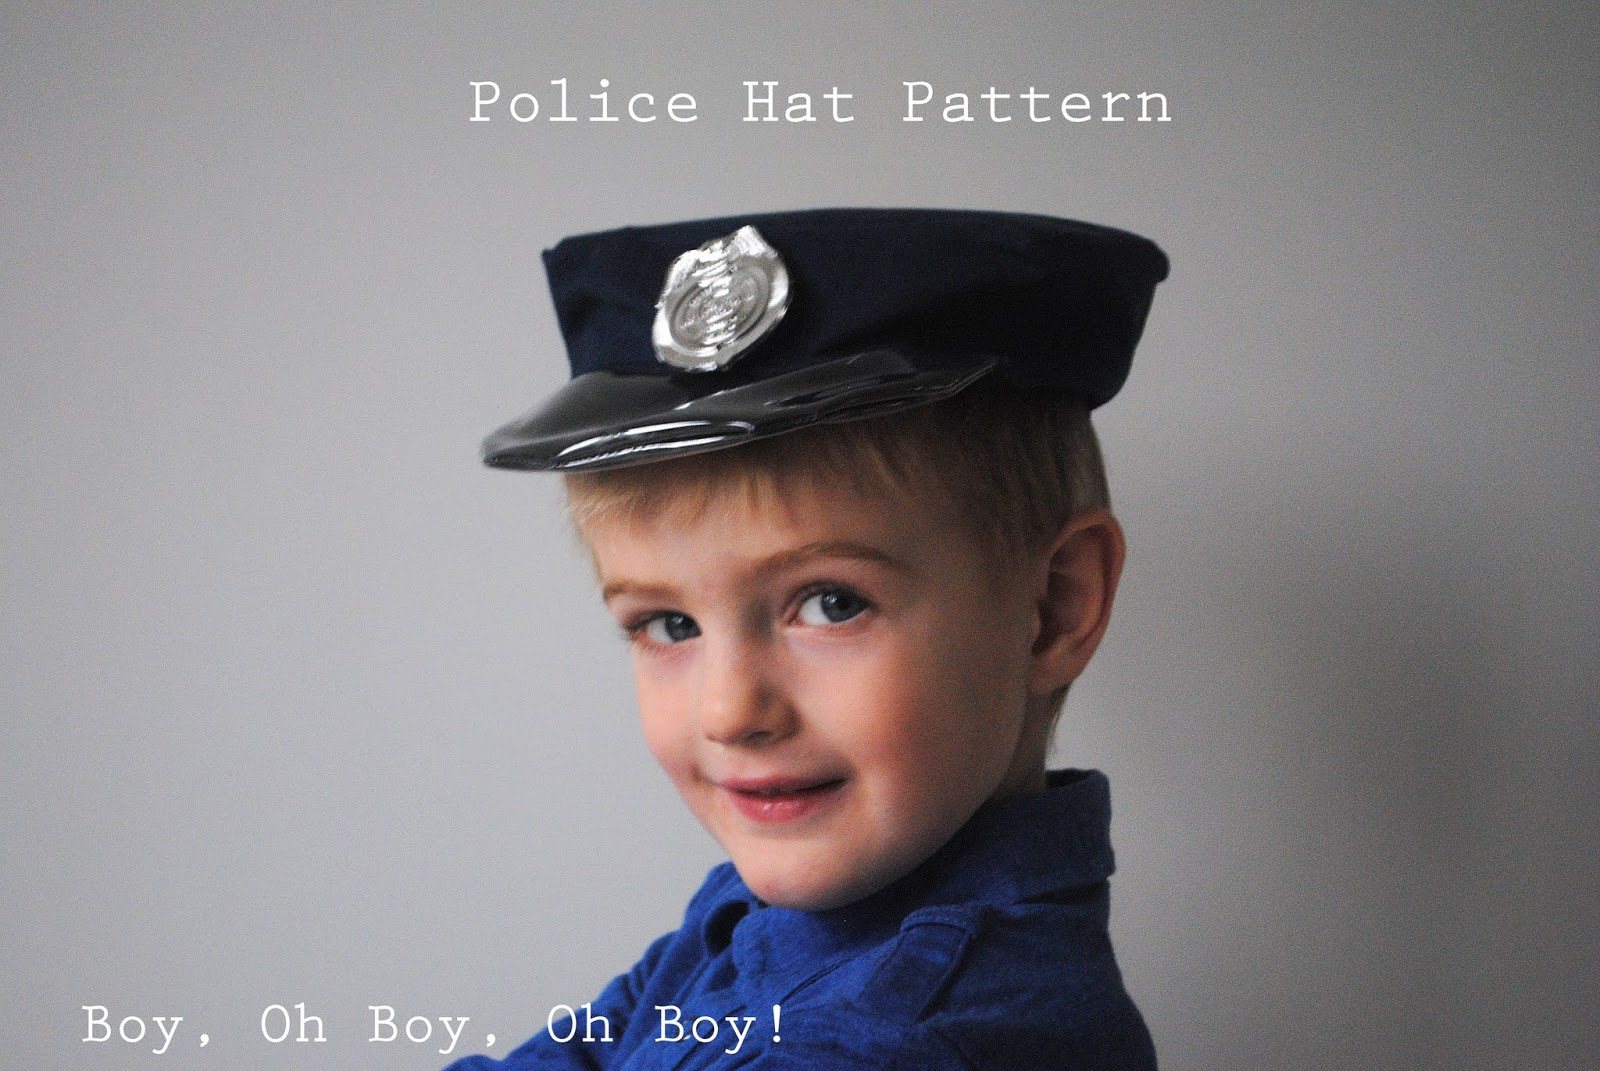 DIY police hat sewing tutorial fun halloween costume idea